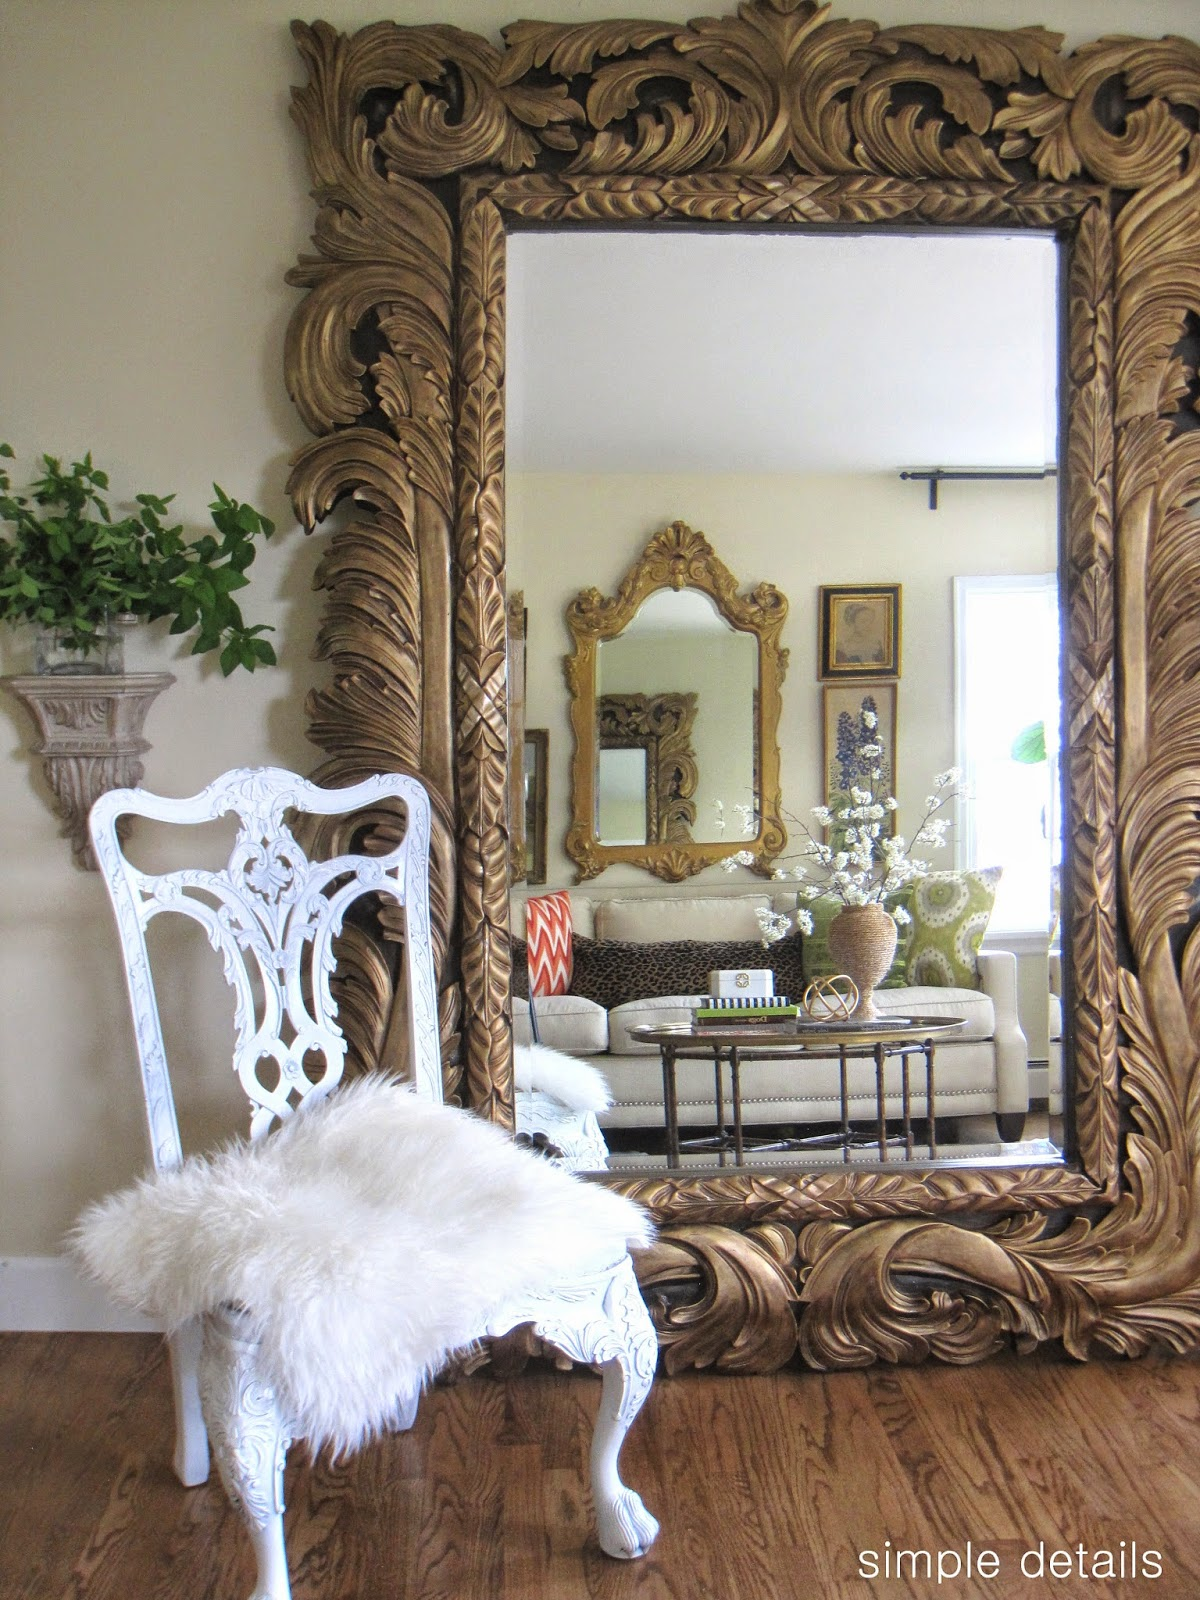 Floor Mirror In Living Room - [mariorange.com]